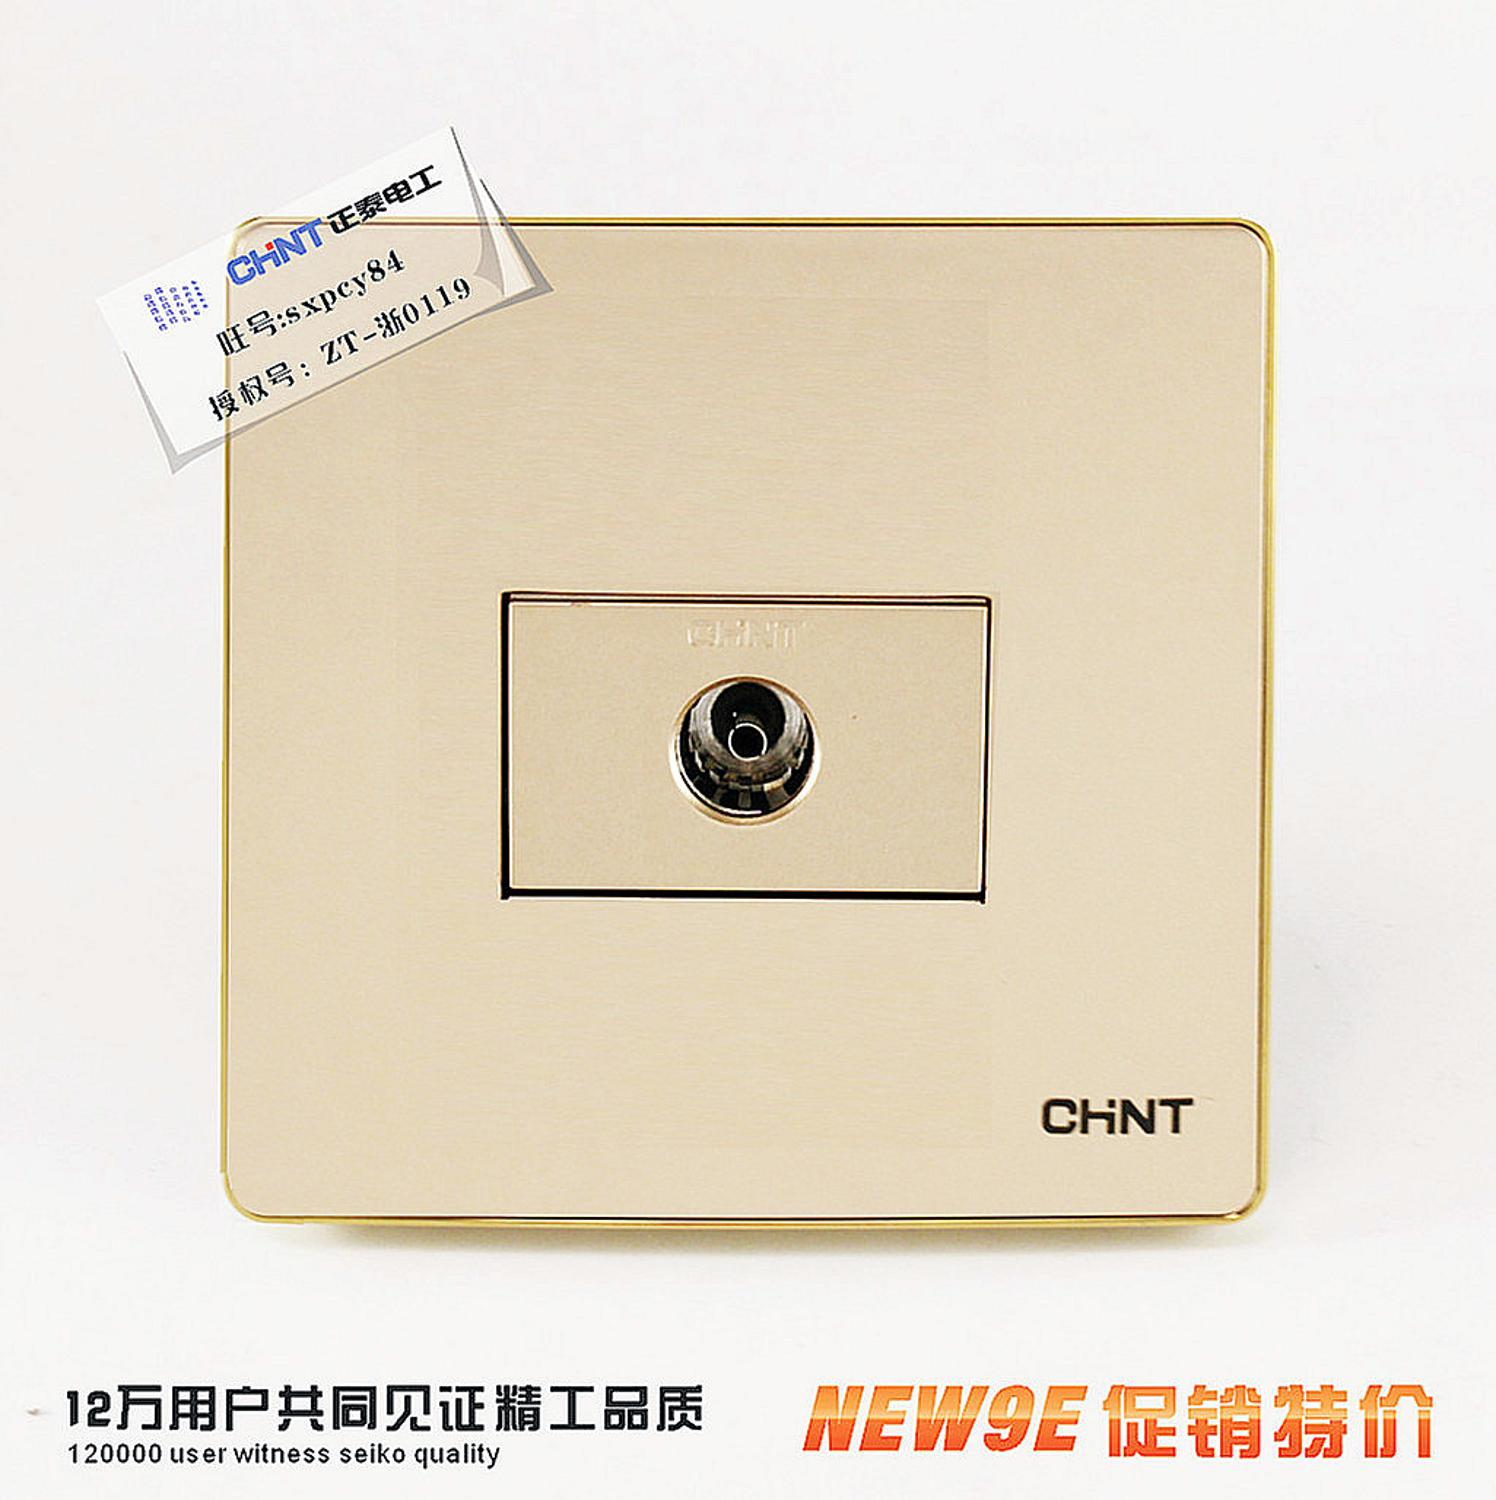 CHINT panel 120 type wall switch 86*86 NEW9E digital cable outlet champagne color(China (Mainland))